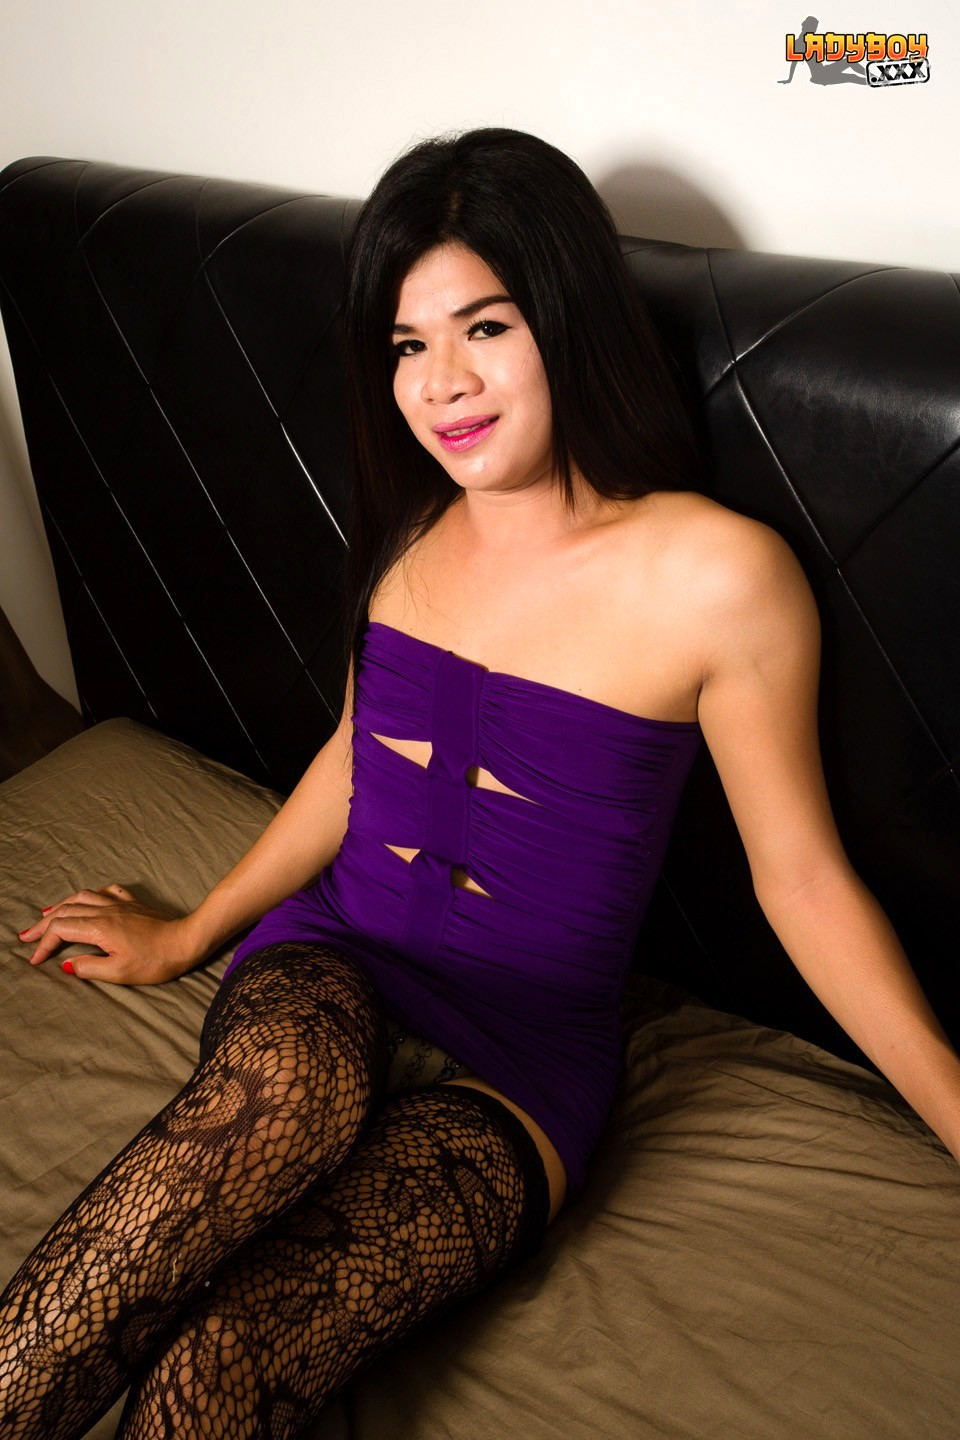 Noina Is A 26 Year Old Ladyboy From Bangkok. She Has An All